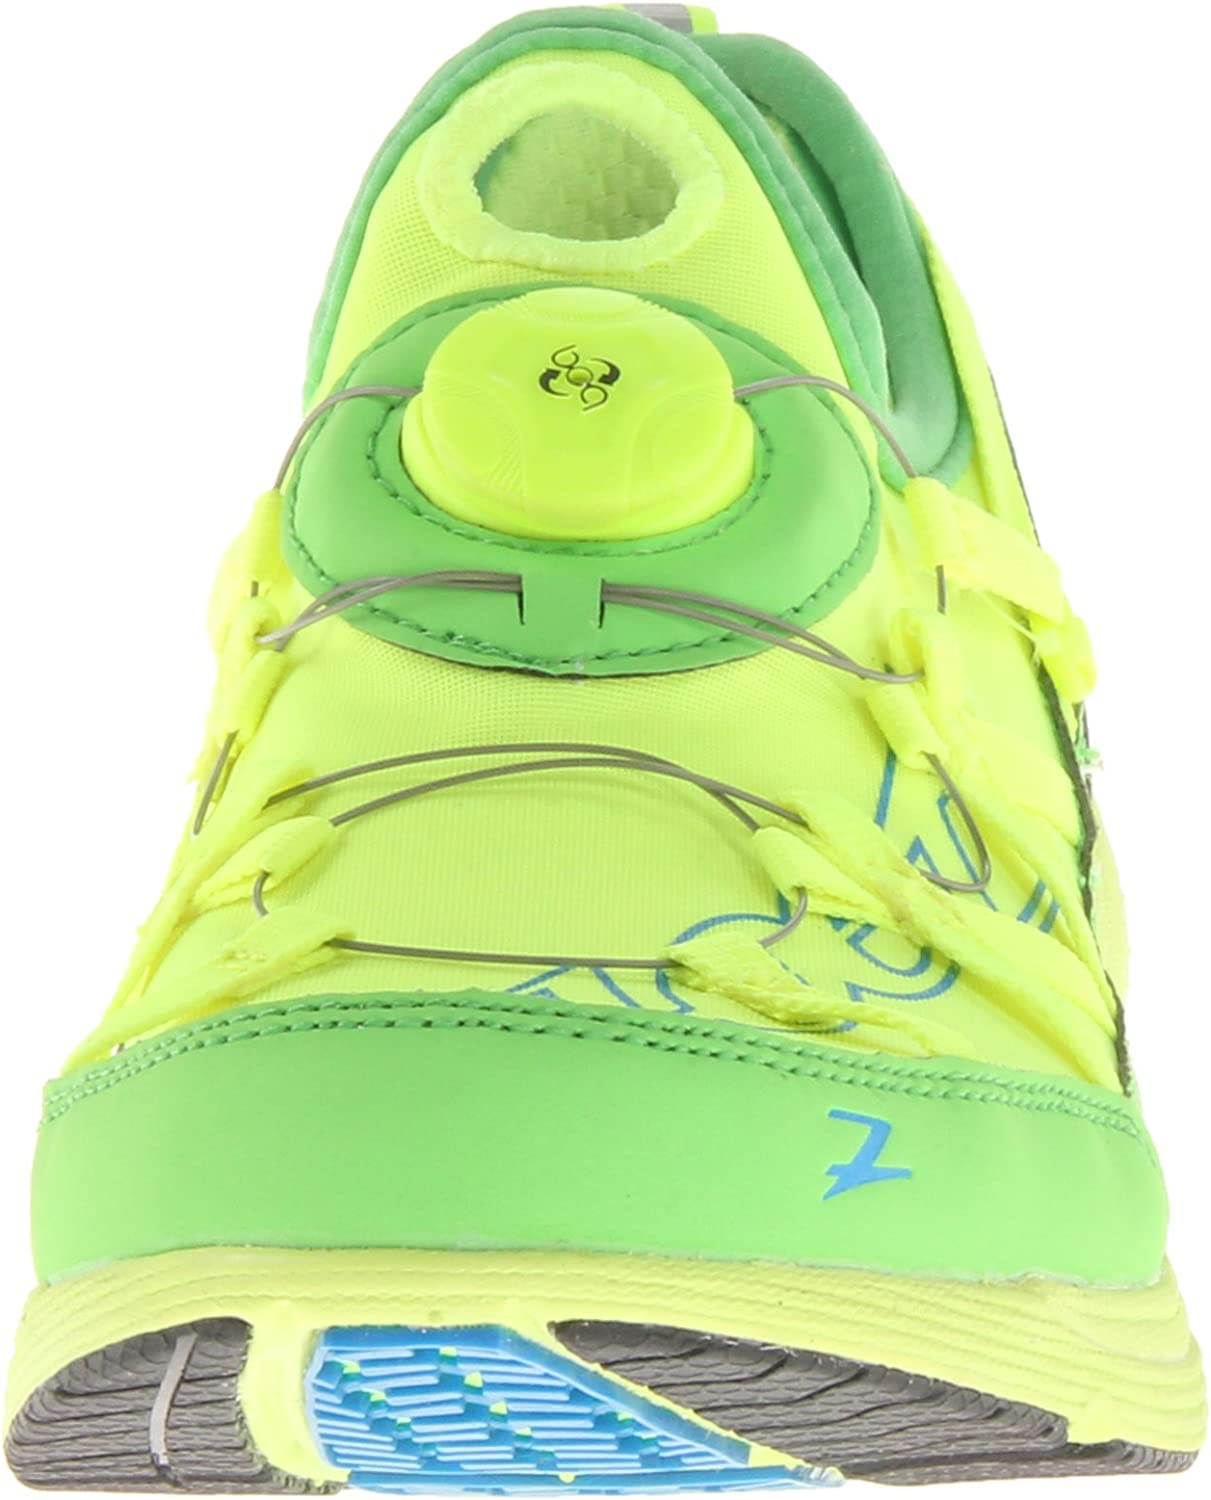 Amazon.com: Zoot Ultra Race 4.0 Boa de la Hombres Running ...